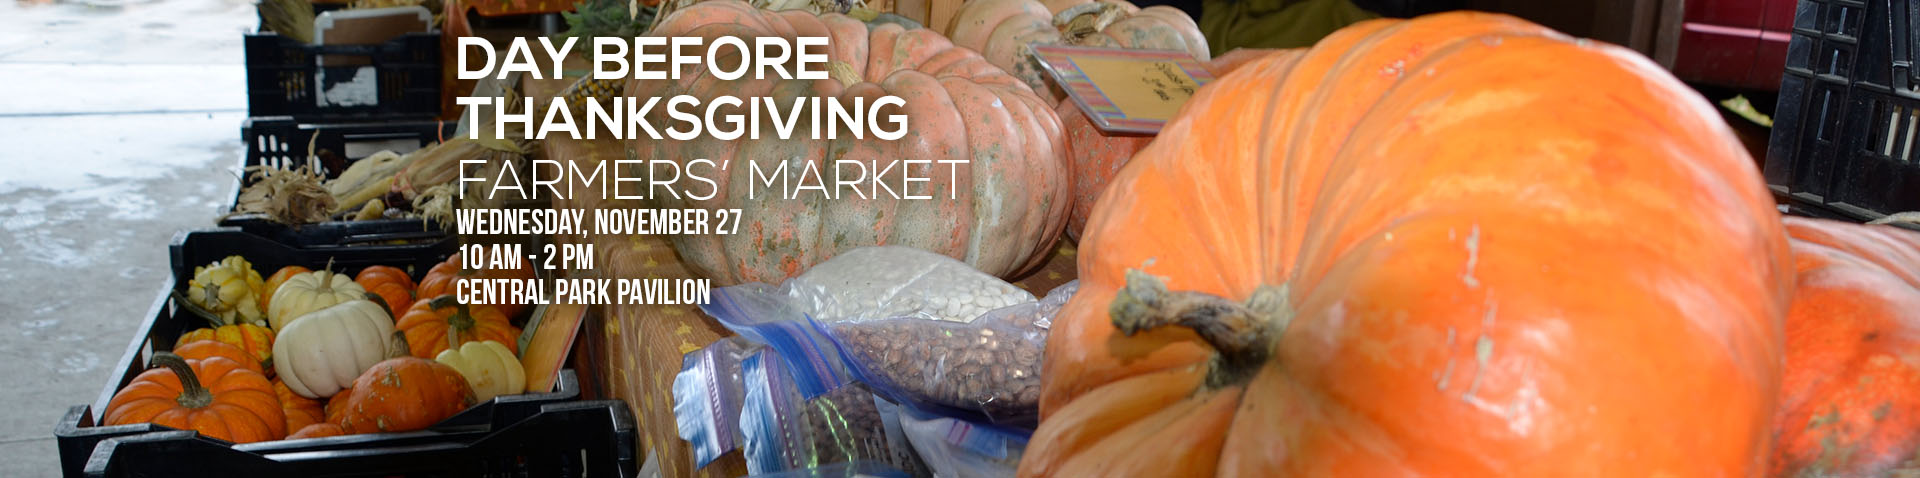 Pre-Thanksgiving Farmers' Market Sale